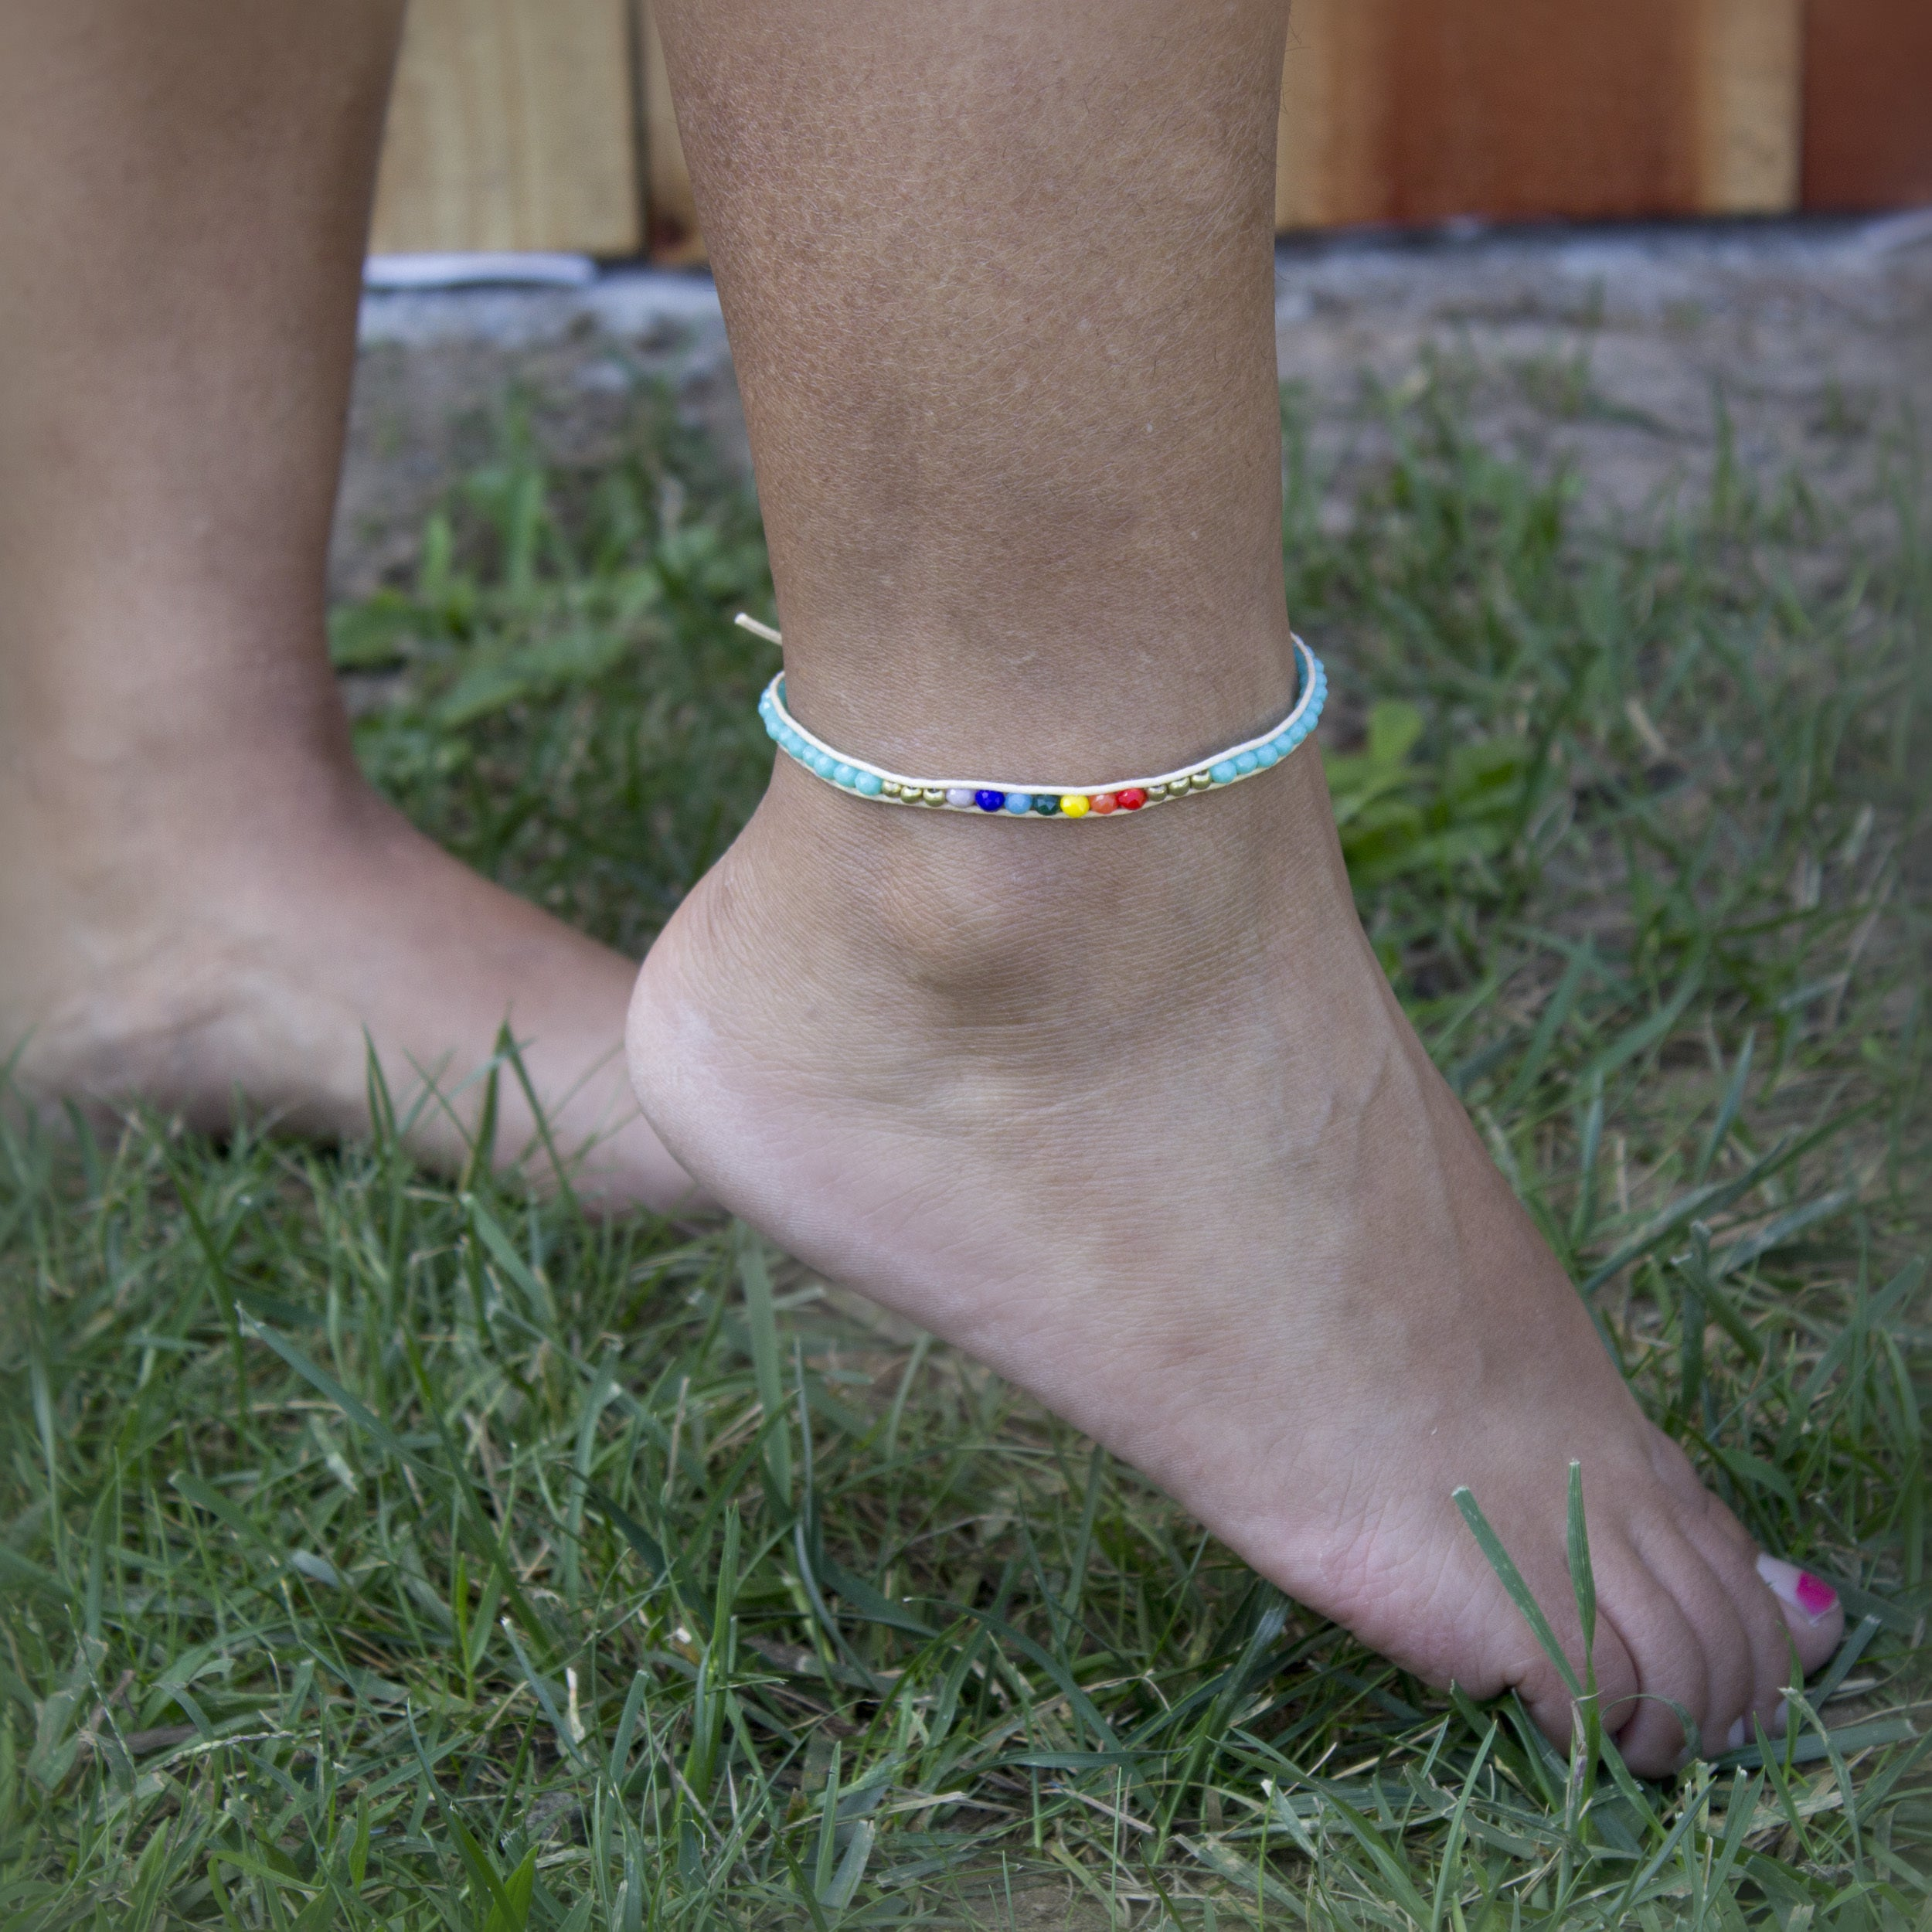 vixen il wife personalized hotwife jewelry initial anklet listing no en fullxfull zoom